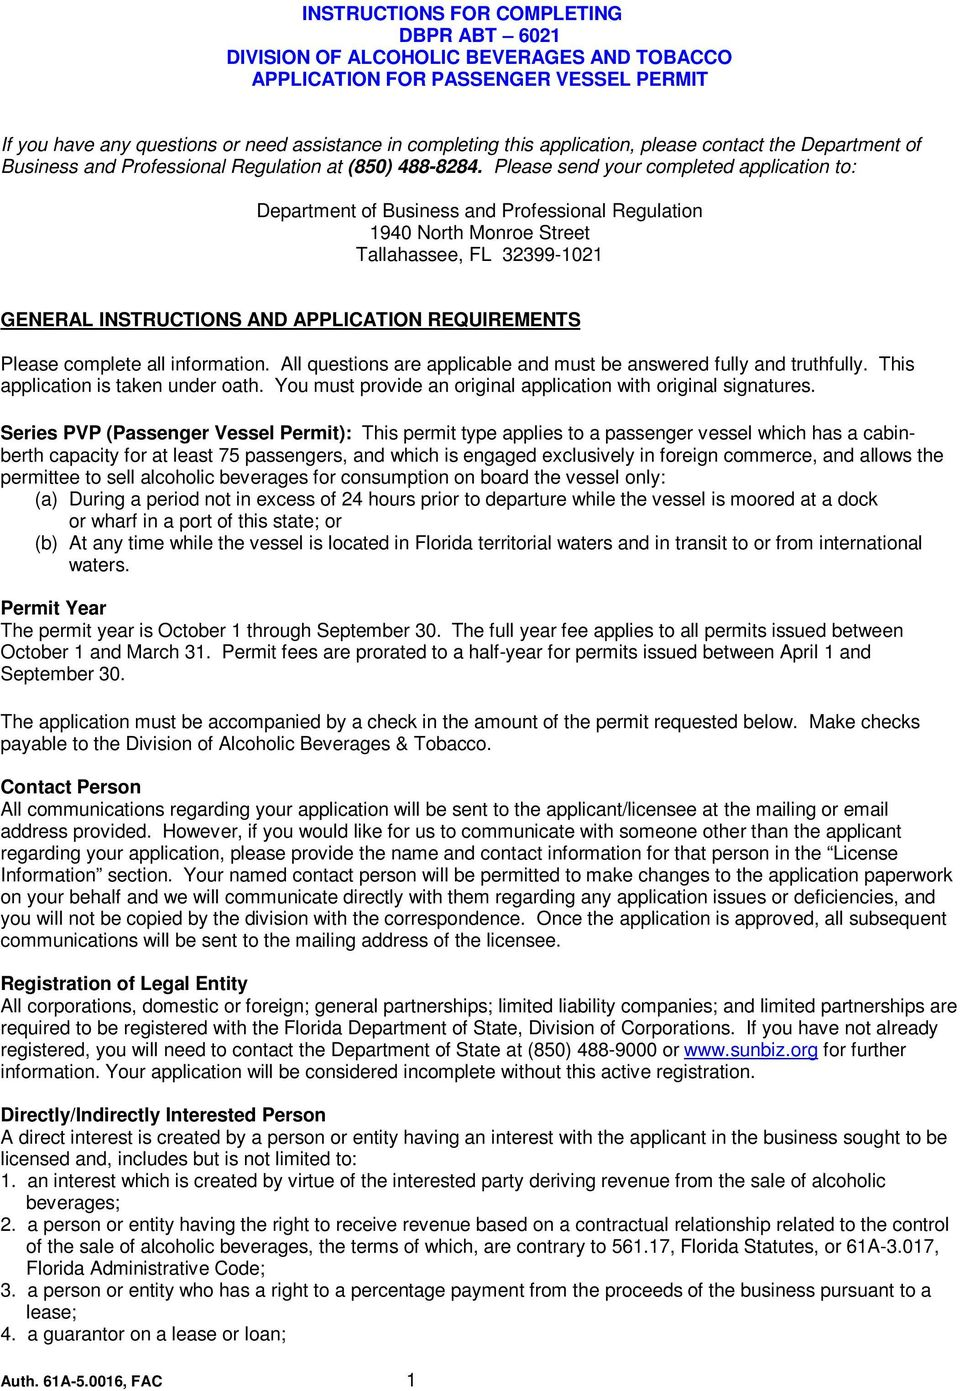 Please send your completed application to: Department of Business and Professional Regulation 1940 North Monroe Street Tallahassee, FL 32399-1021 GENERAL INSTRUCTIONS AND APPLICATION REQUIREMENTS